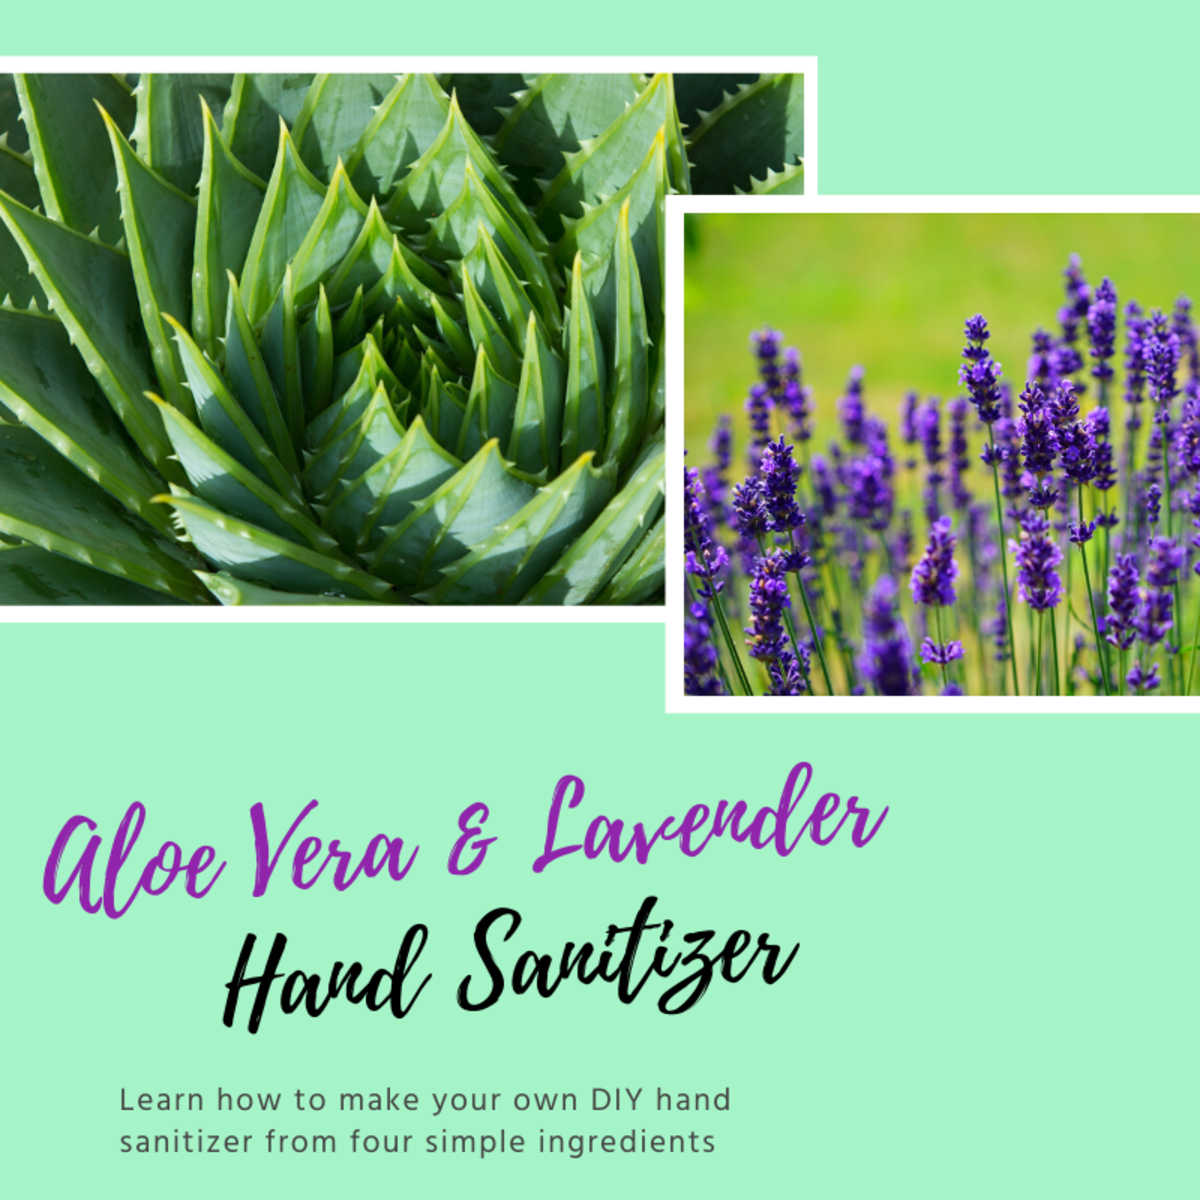 How to Make DIY Aloe Vera and Lavender Hand Sanitizer